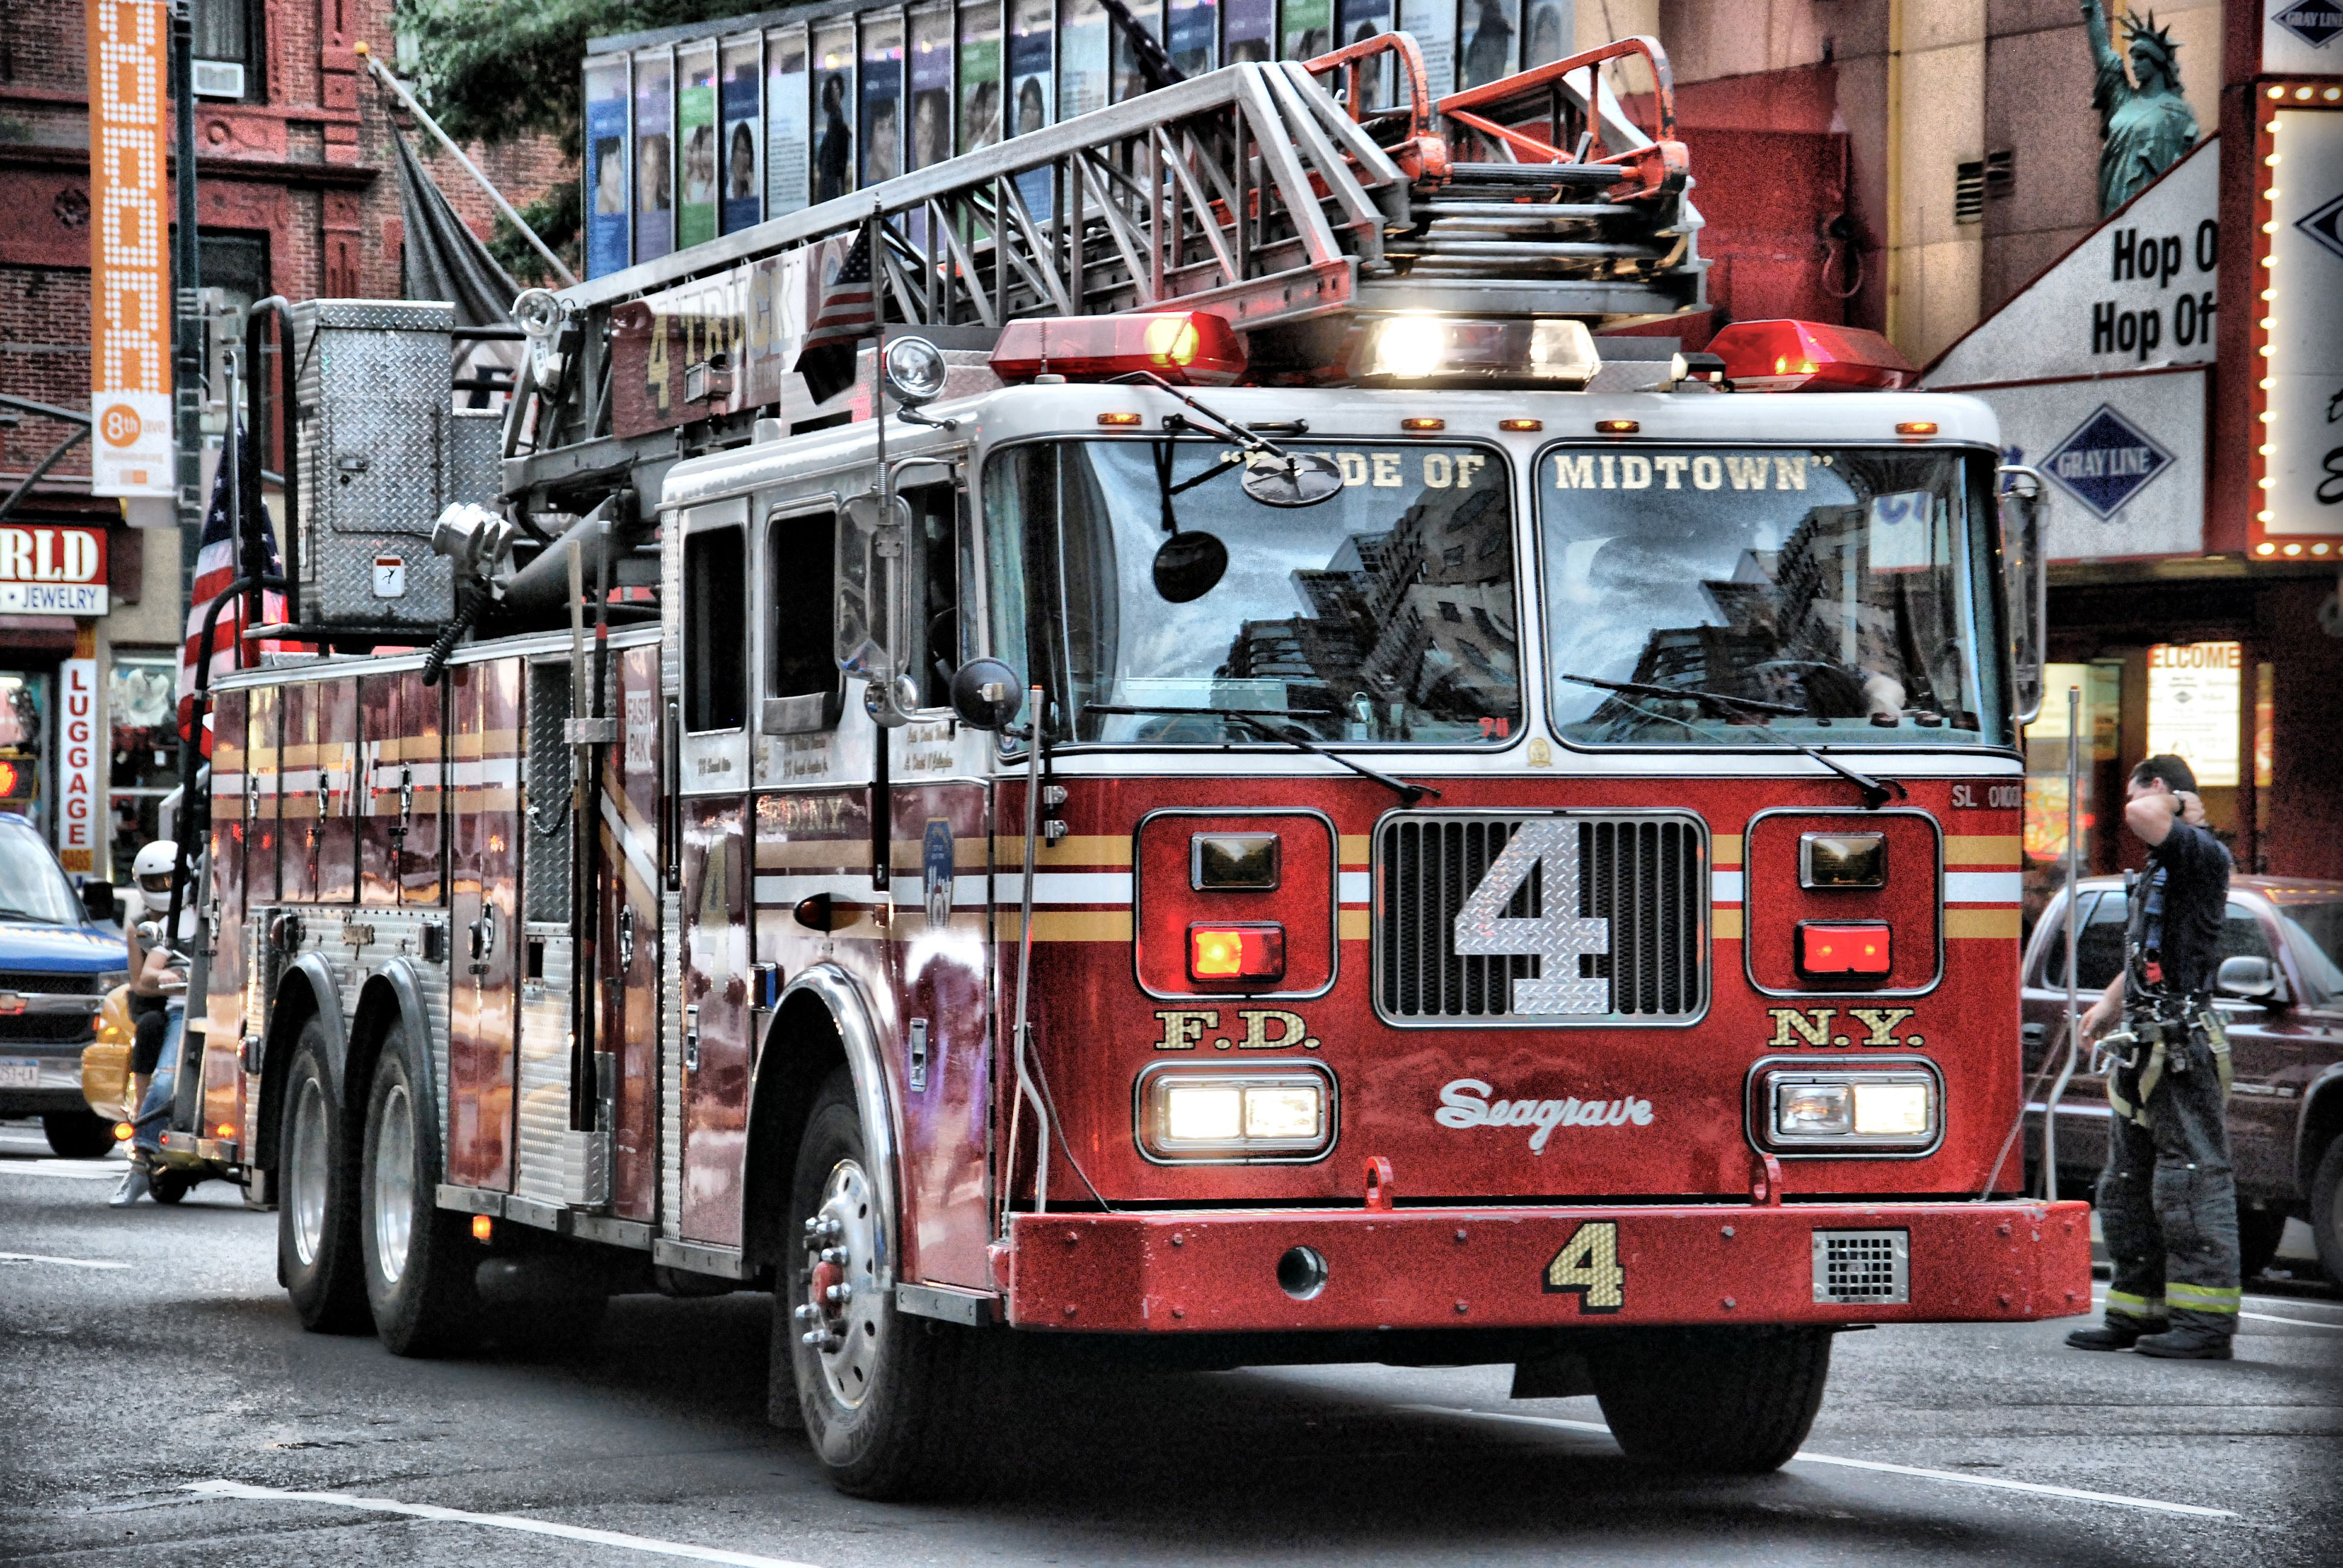 fdny ladder Book Covers | FDNY | Pinterest | Book, Ladder and Book ...